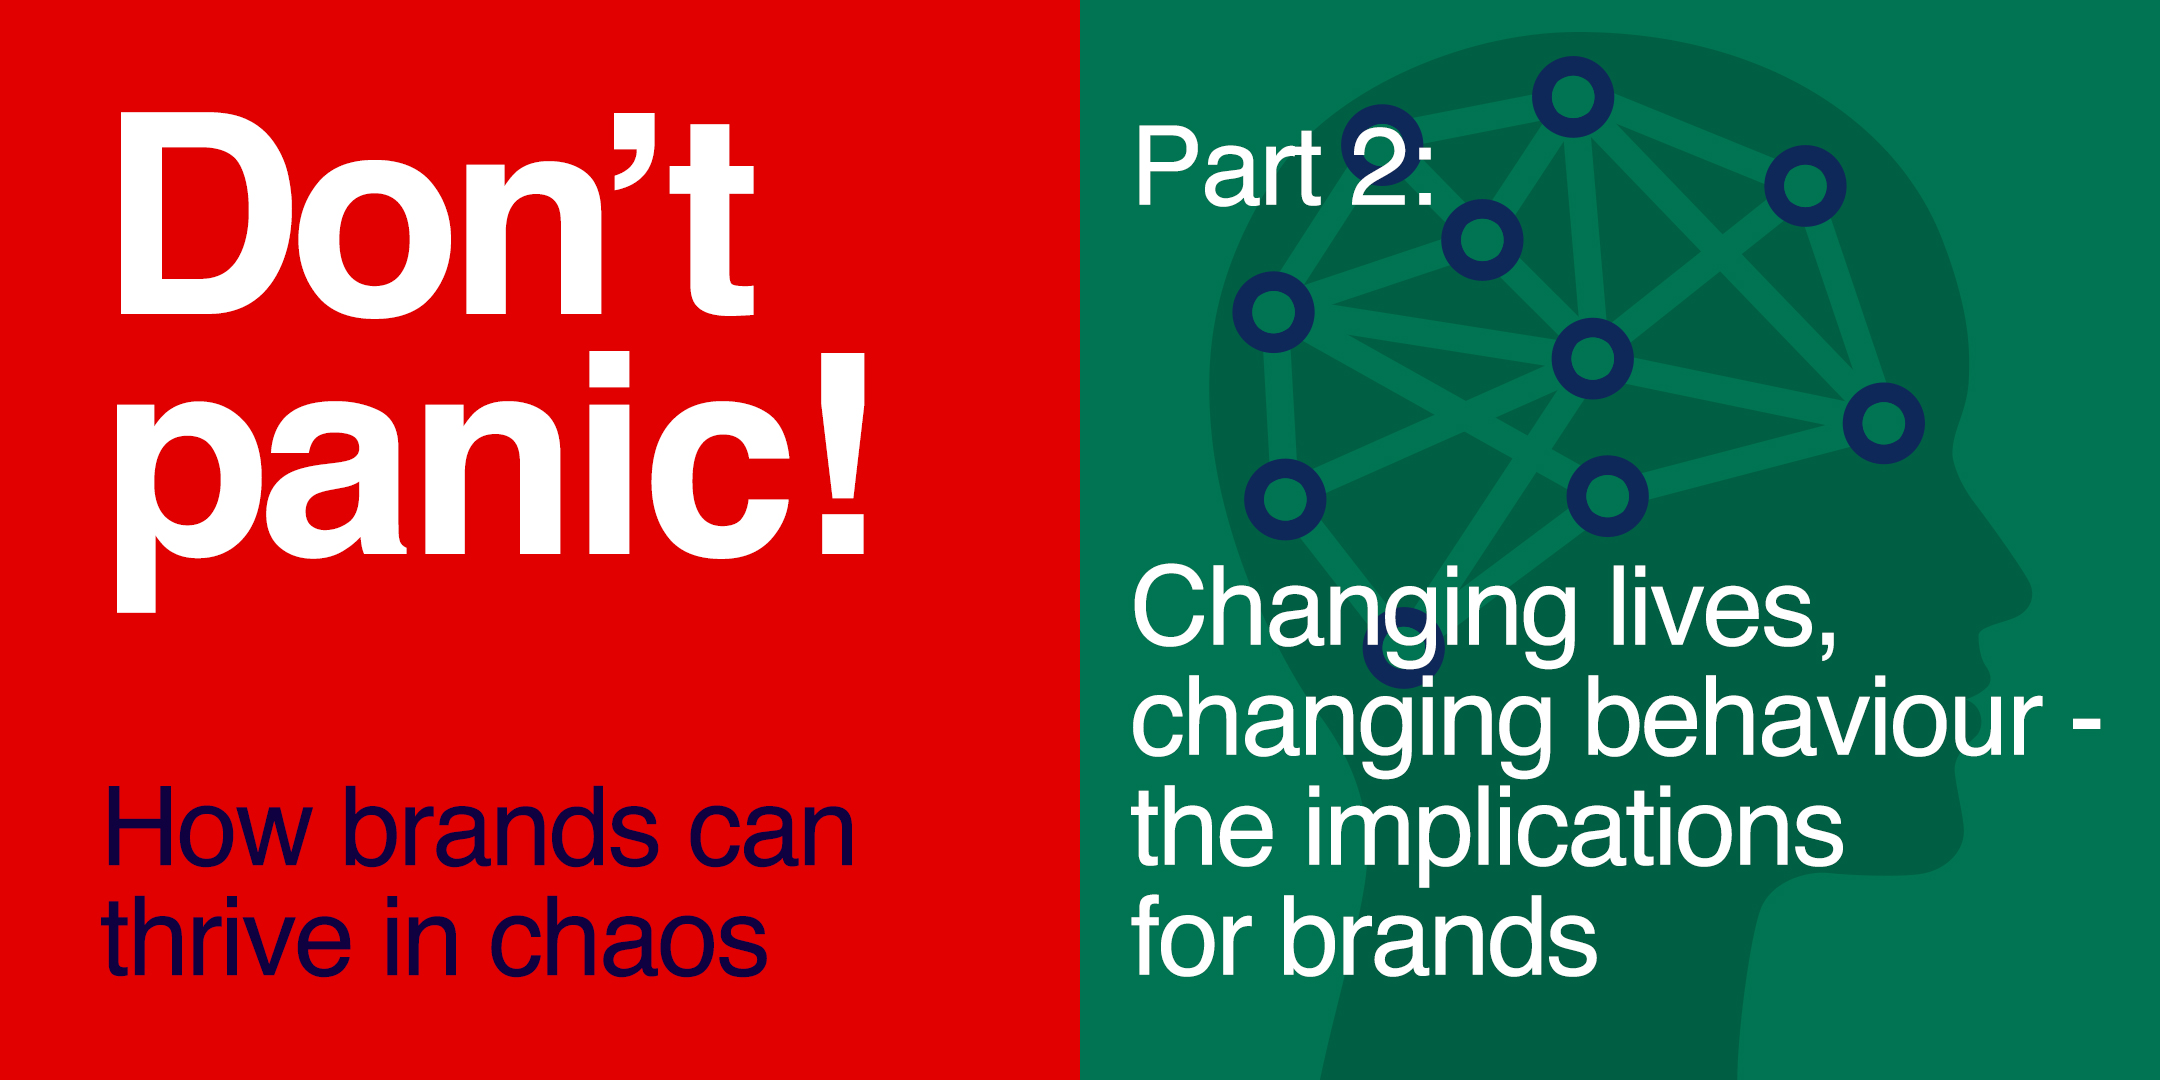 Webinar: DON'T PANIC! How Brands Can Thrive in Chaos (Part 2)